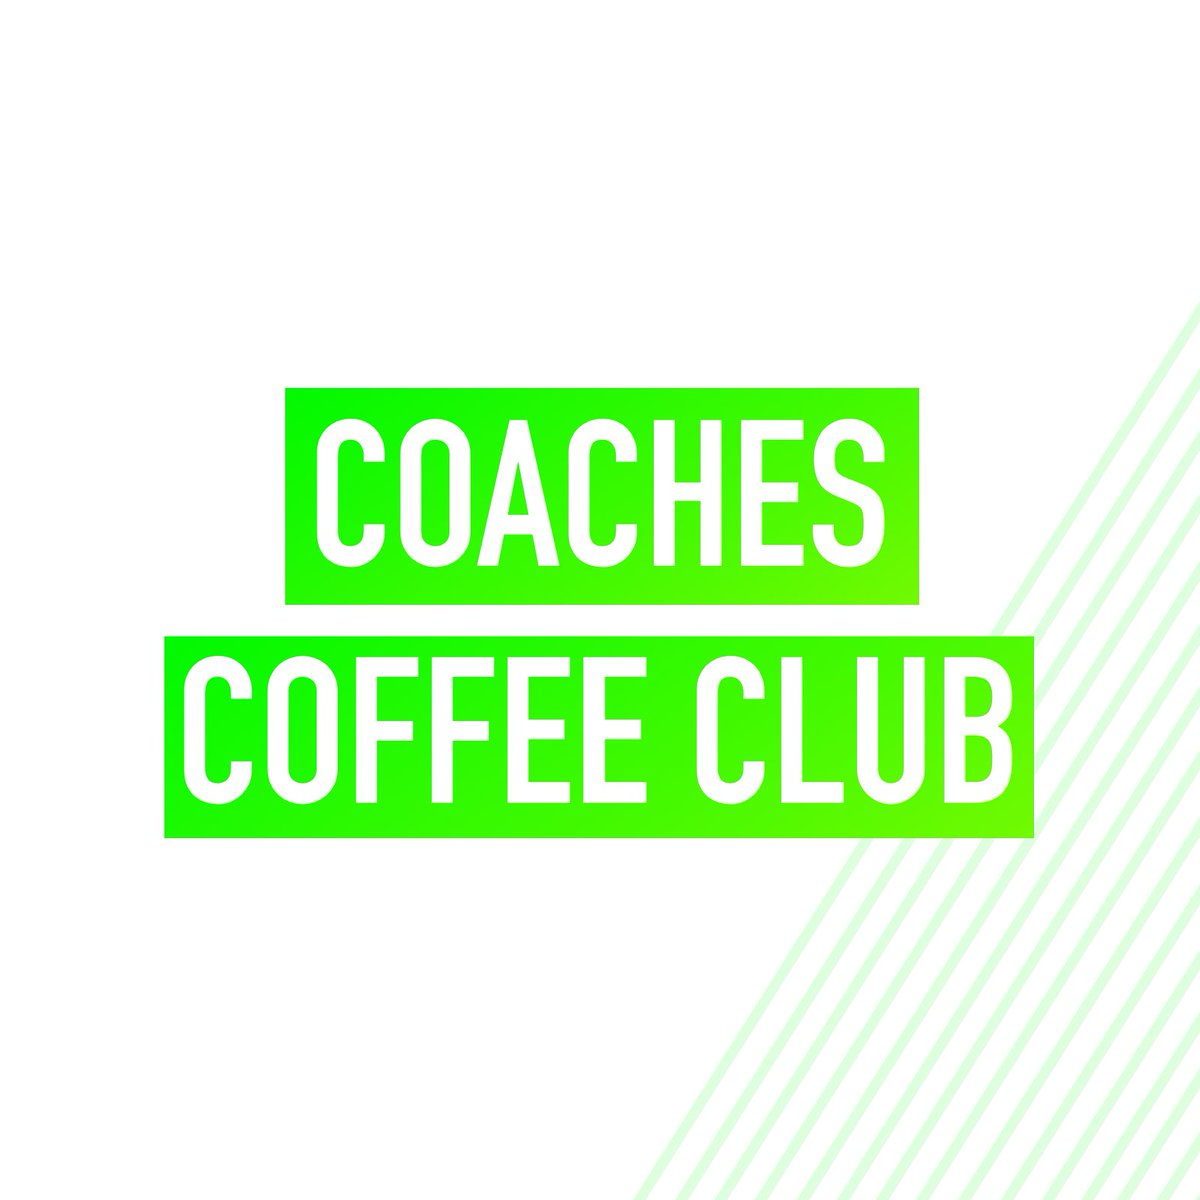 RT @The_CoachingLab: EVENT | Coaches Coffee Club heading to Oxfordshire next month with @JPR_25 and @ThomasWhartley   ⏰ 9:00 till 10:15am 📍 Thame, Oxfordshire  📆 Tuesday 17th December  👉🏽 https://t.co/5CvQwvqCX1